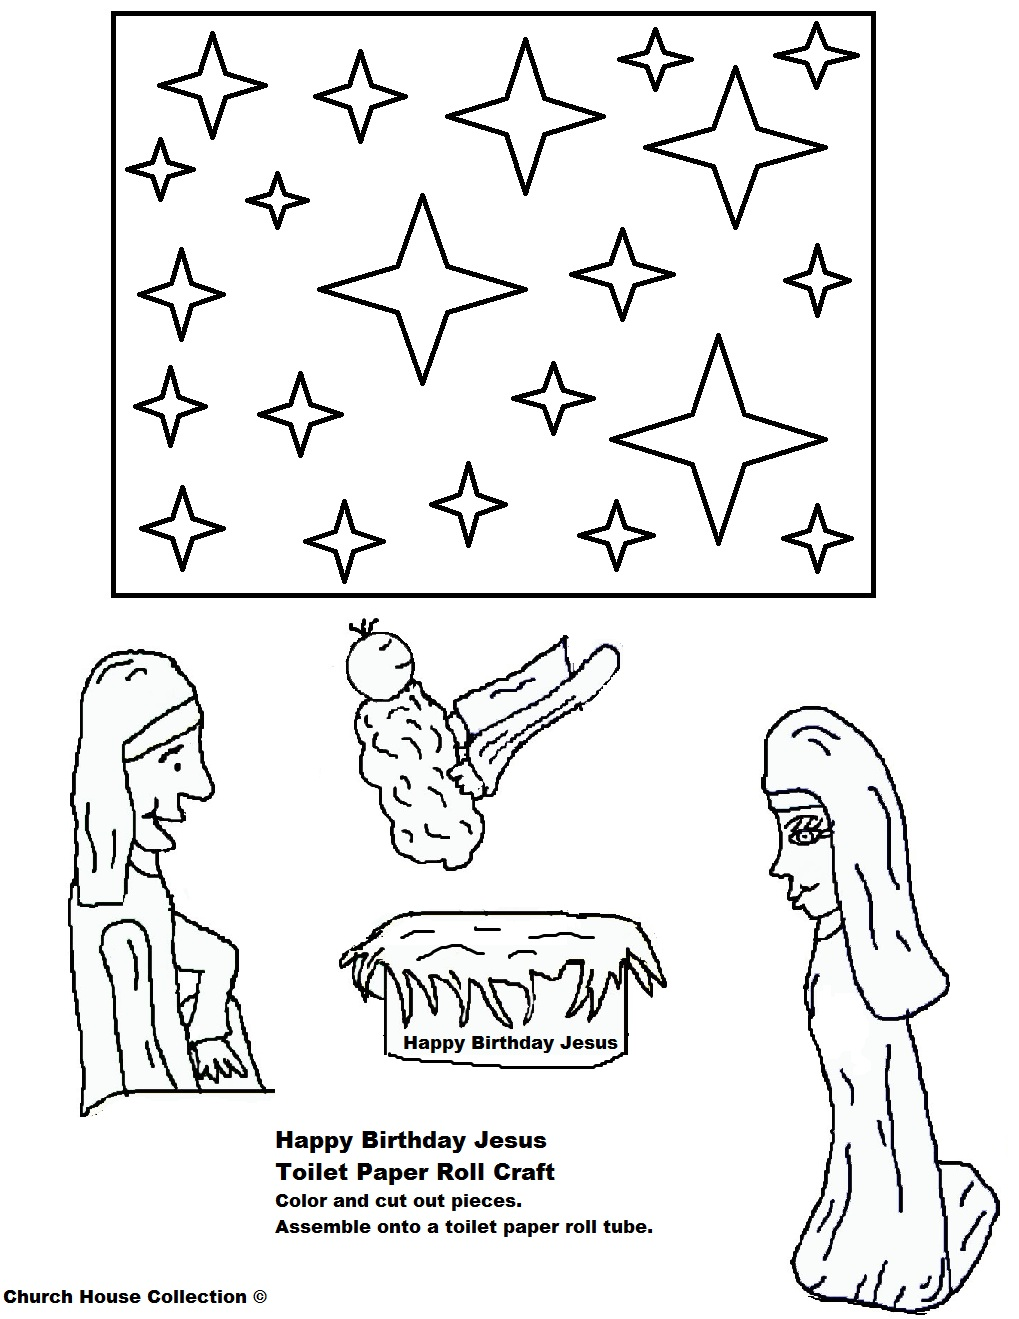 happy birthday jesus color sheet ; Happy%2520Birthday%2520Jesus%2520Toilet%2520Paper%2520Roll%2520Template